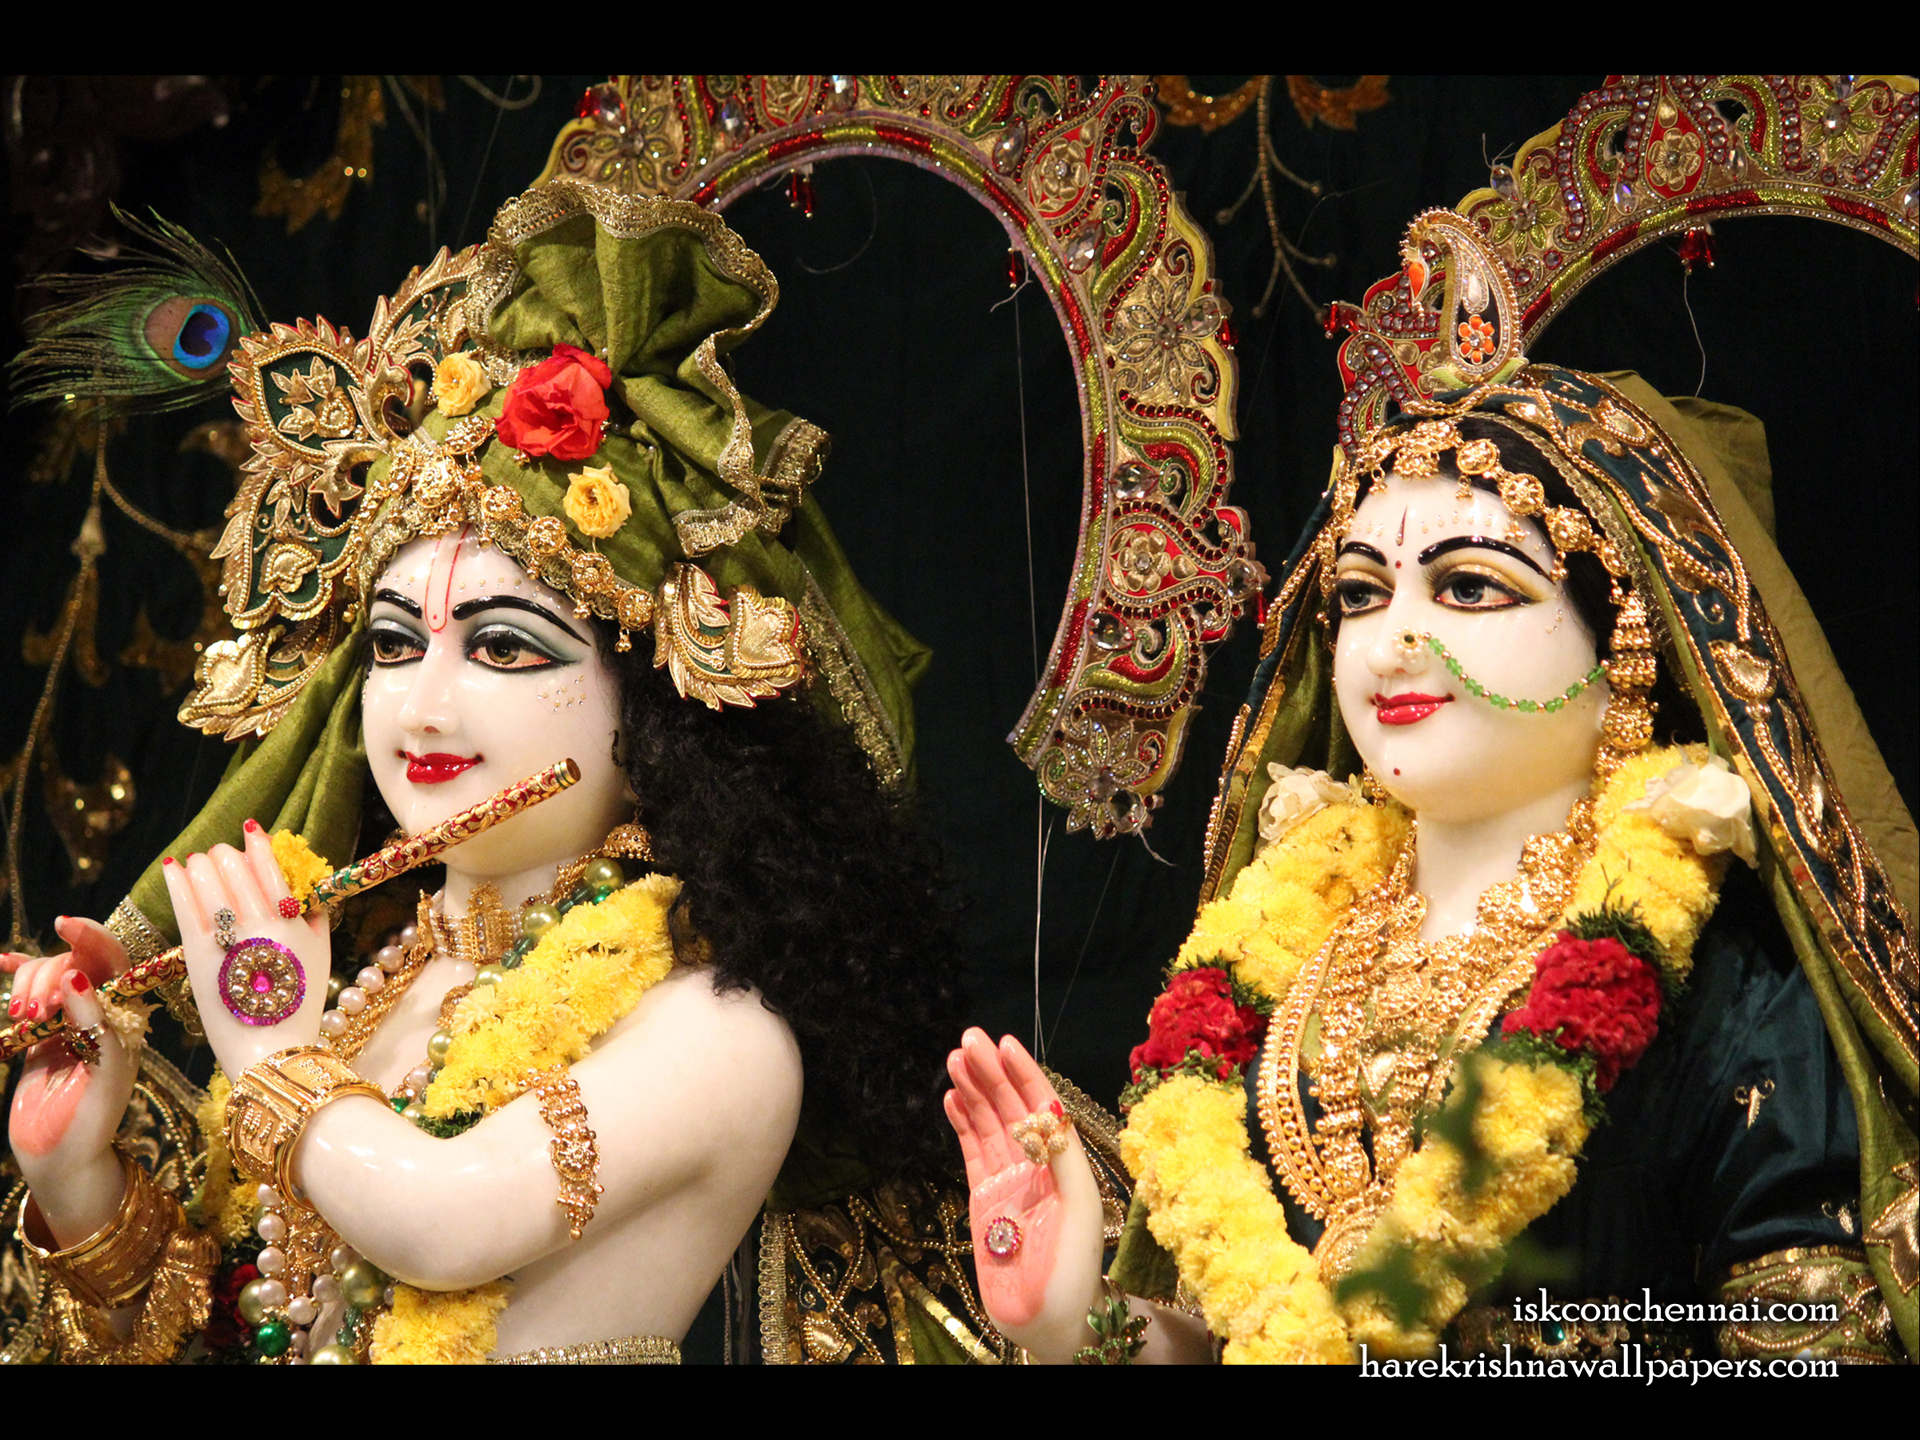 Sri Sri Radha Krishna Close up Wallpaper (004) Size 1920x1440 Download